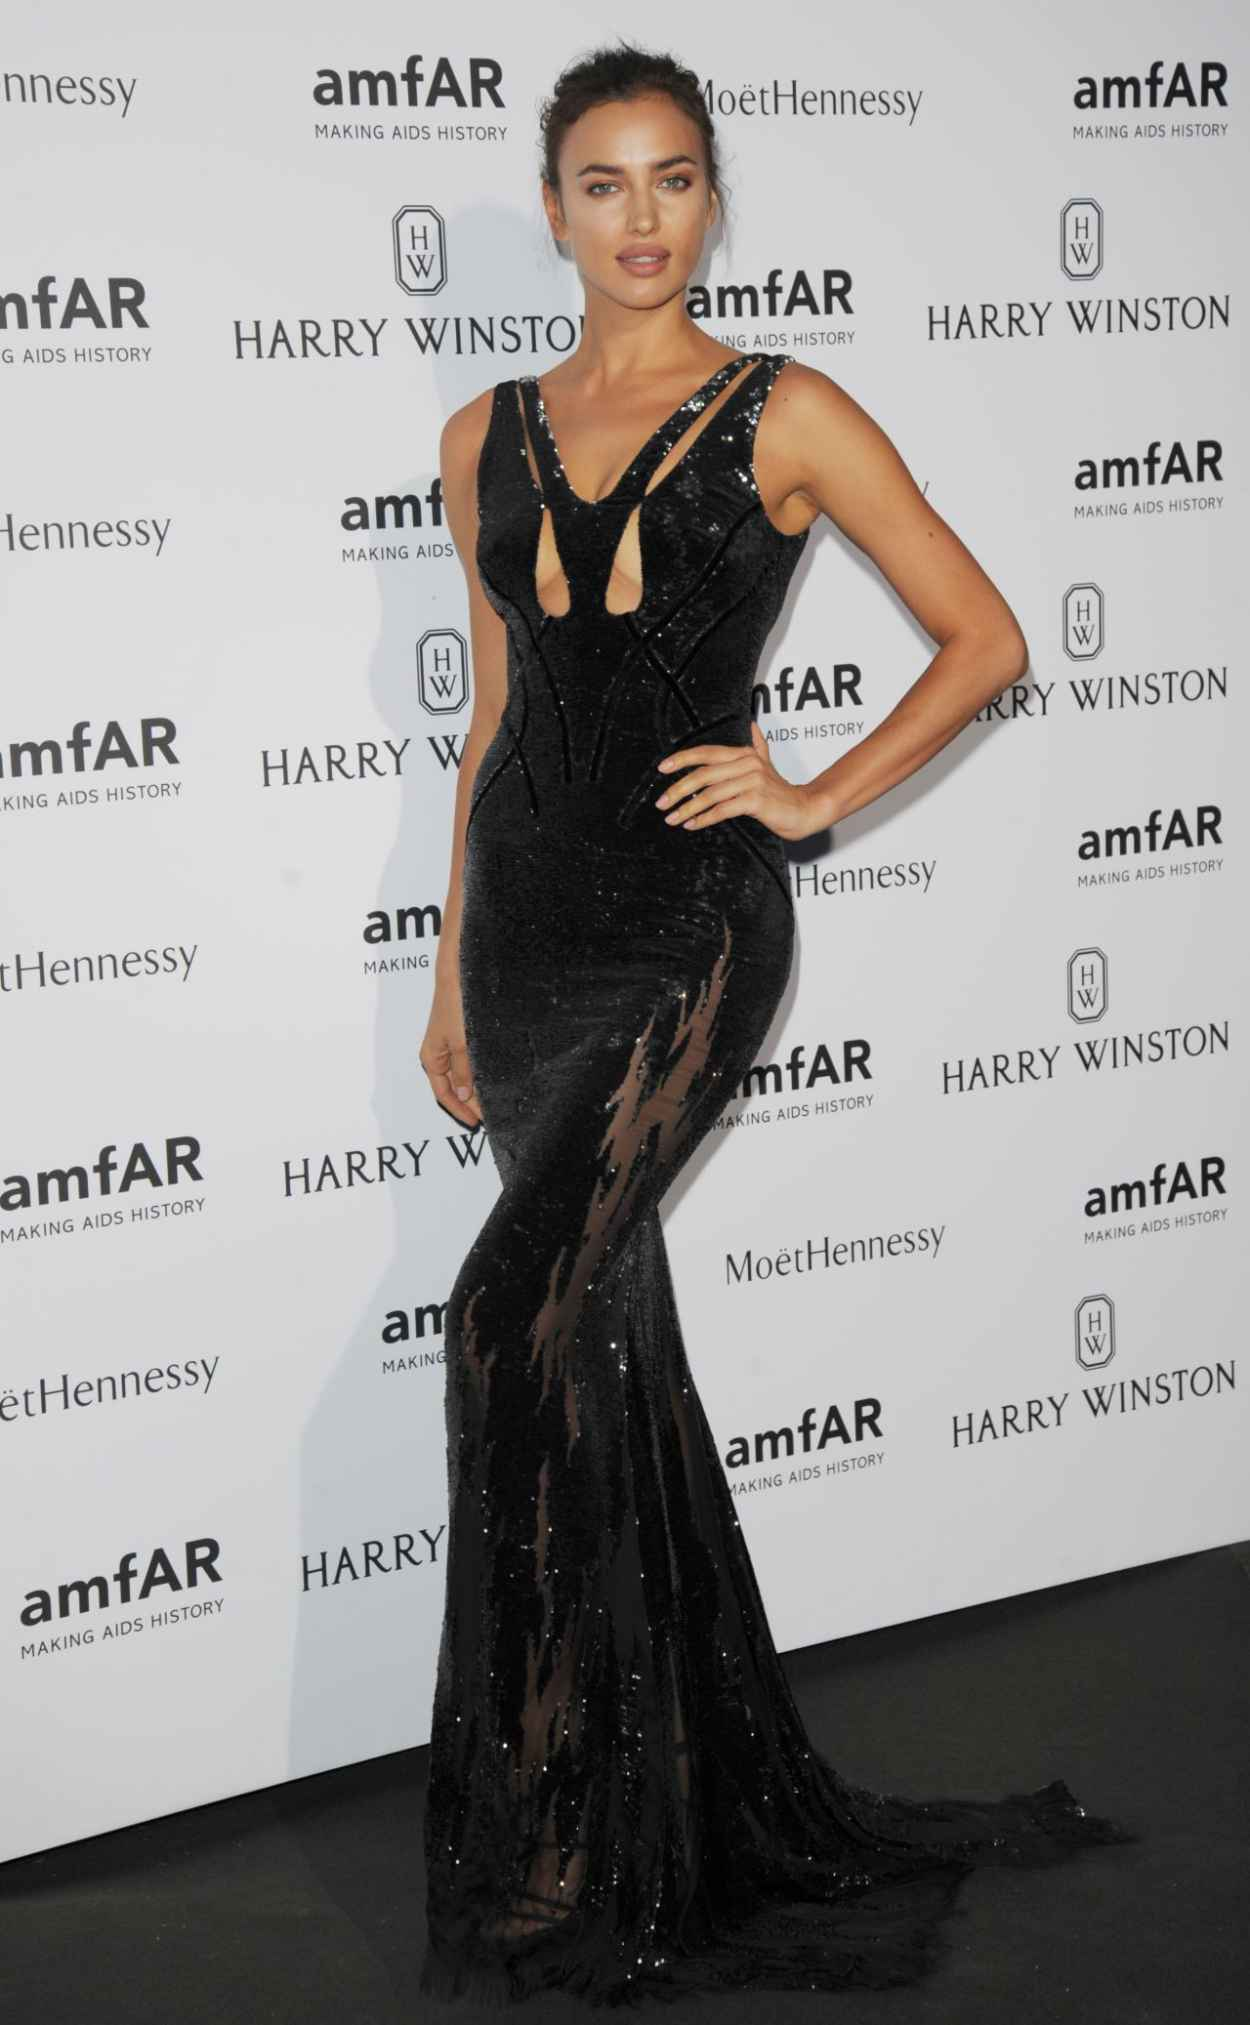 Irina Shayk on Red Carpet - amfAR Dinner in Paris, July 2015-2